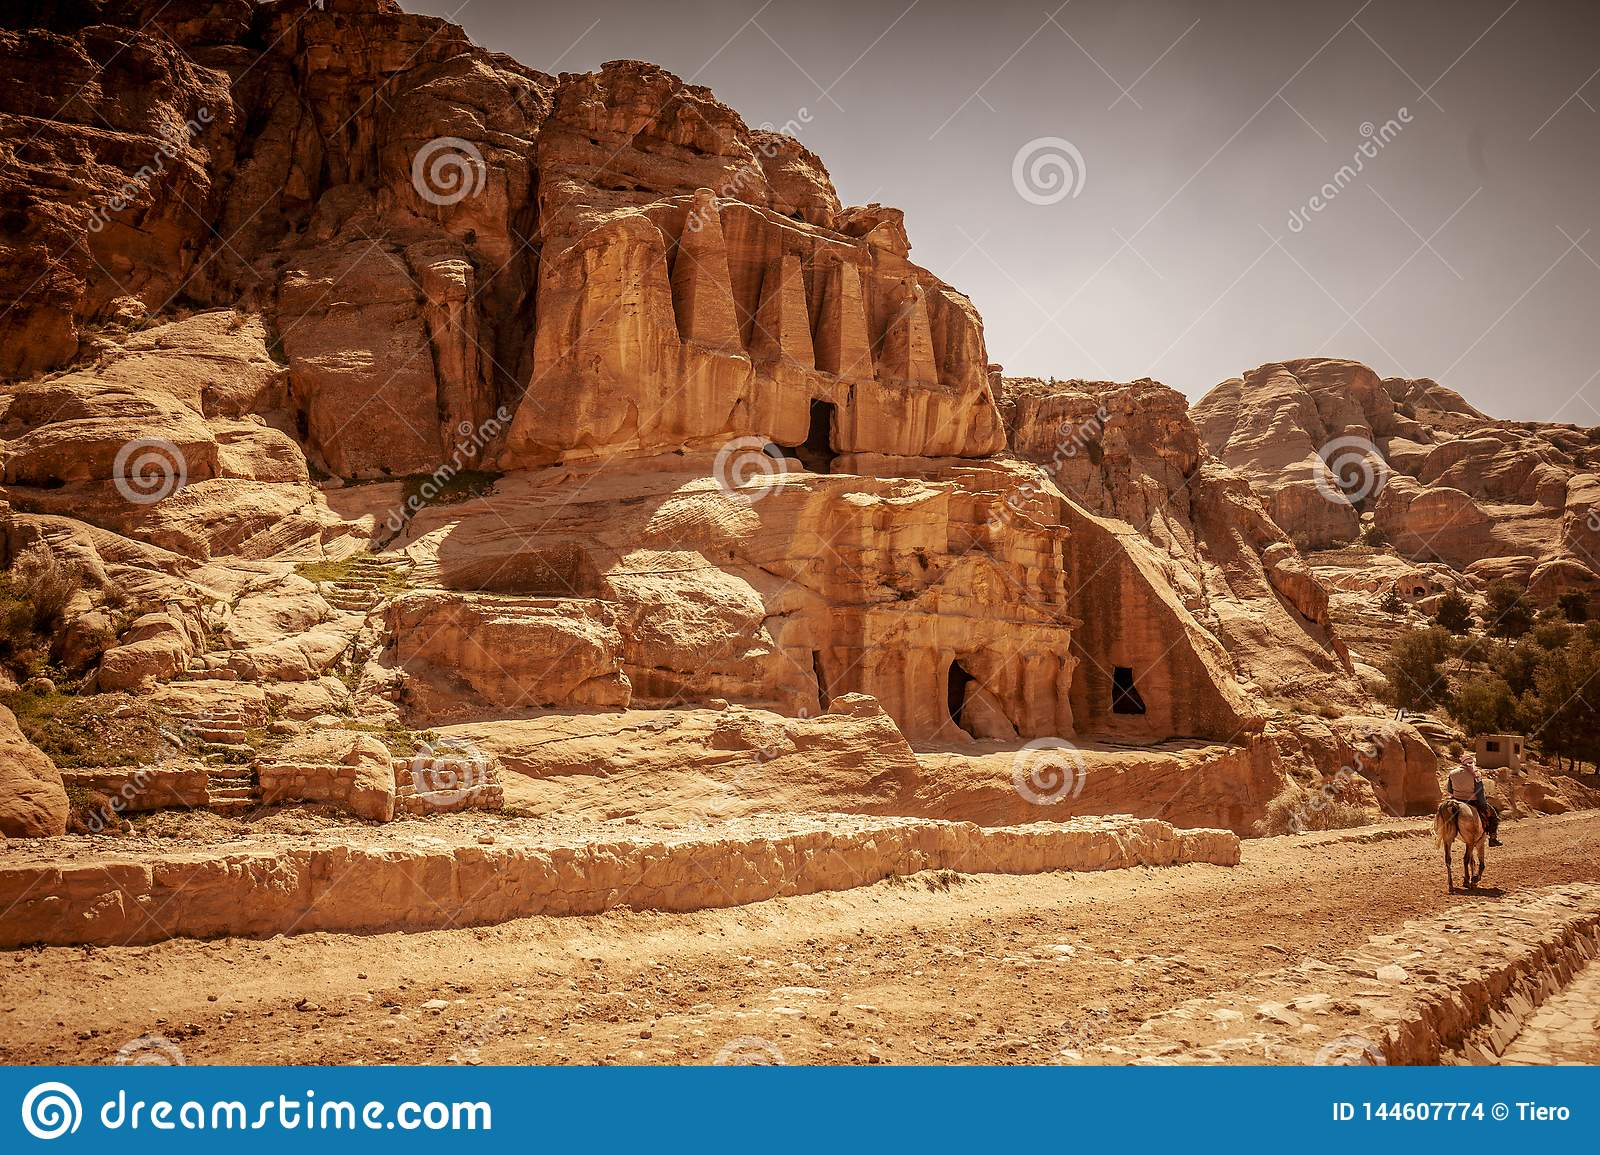 Temple in petra